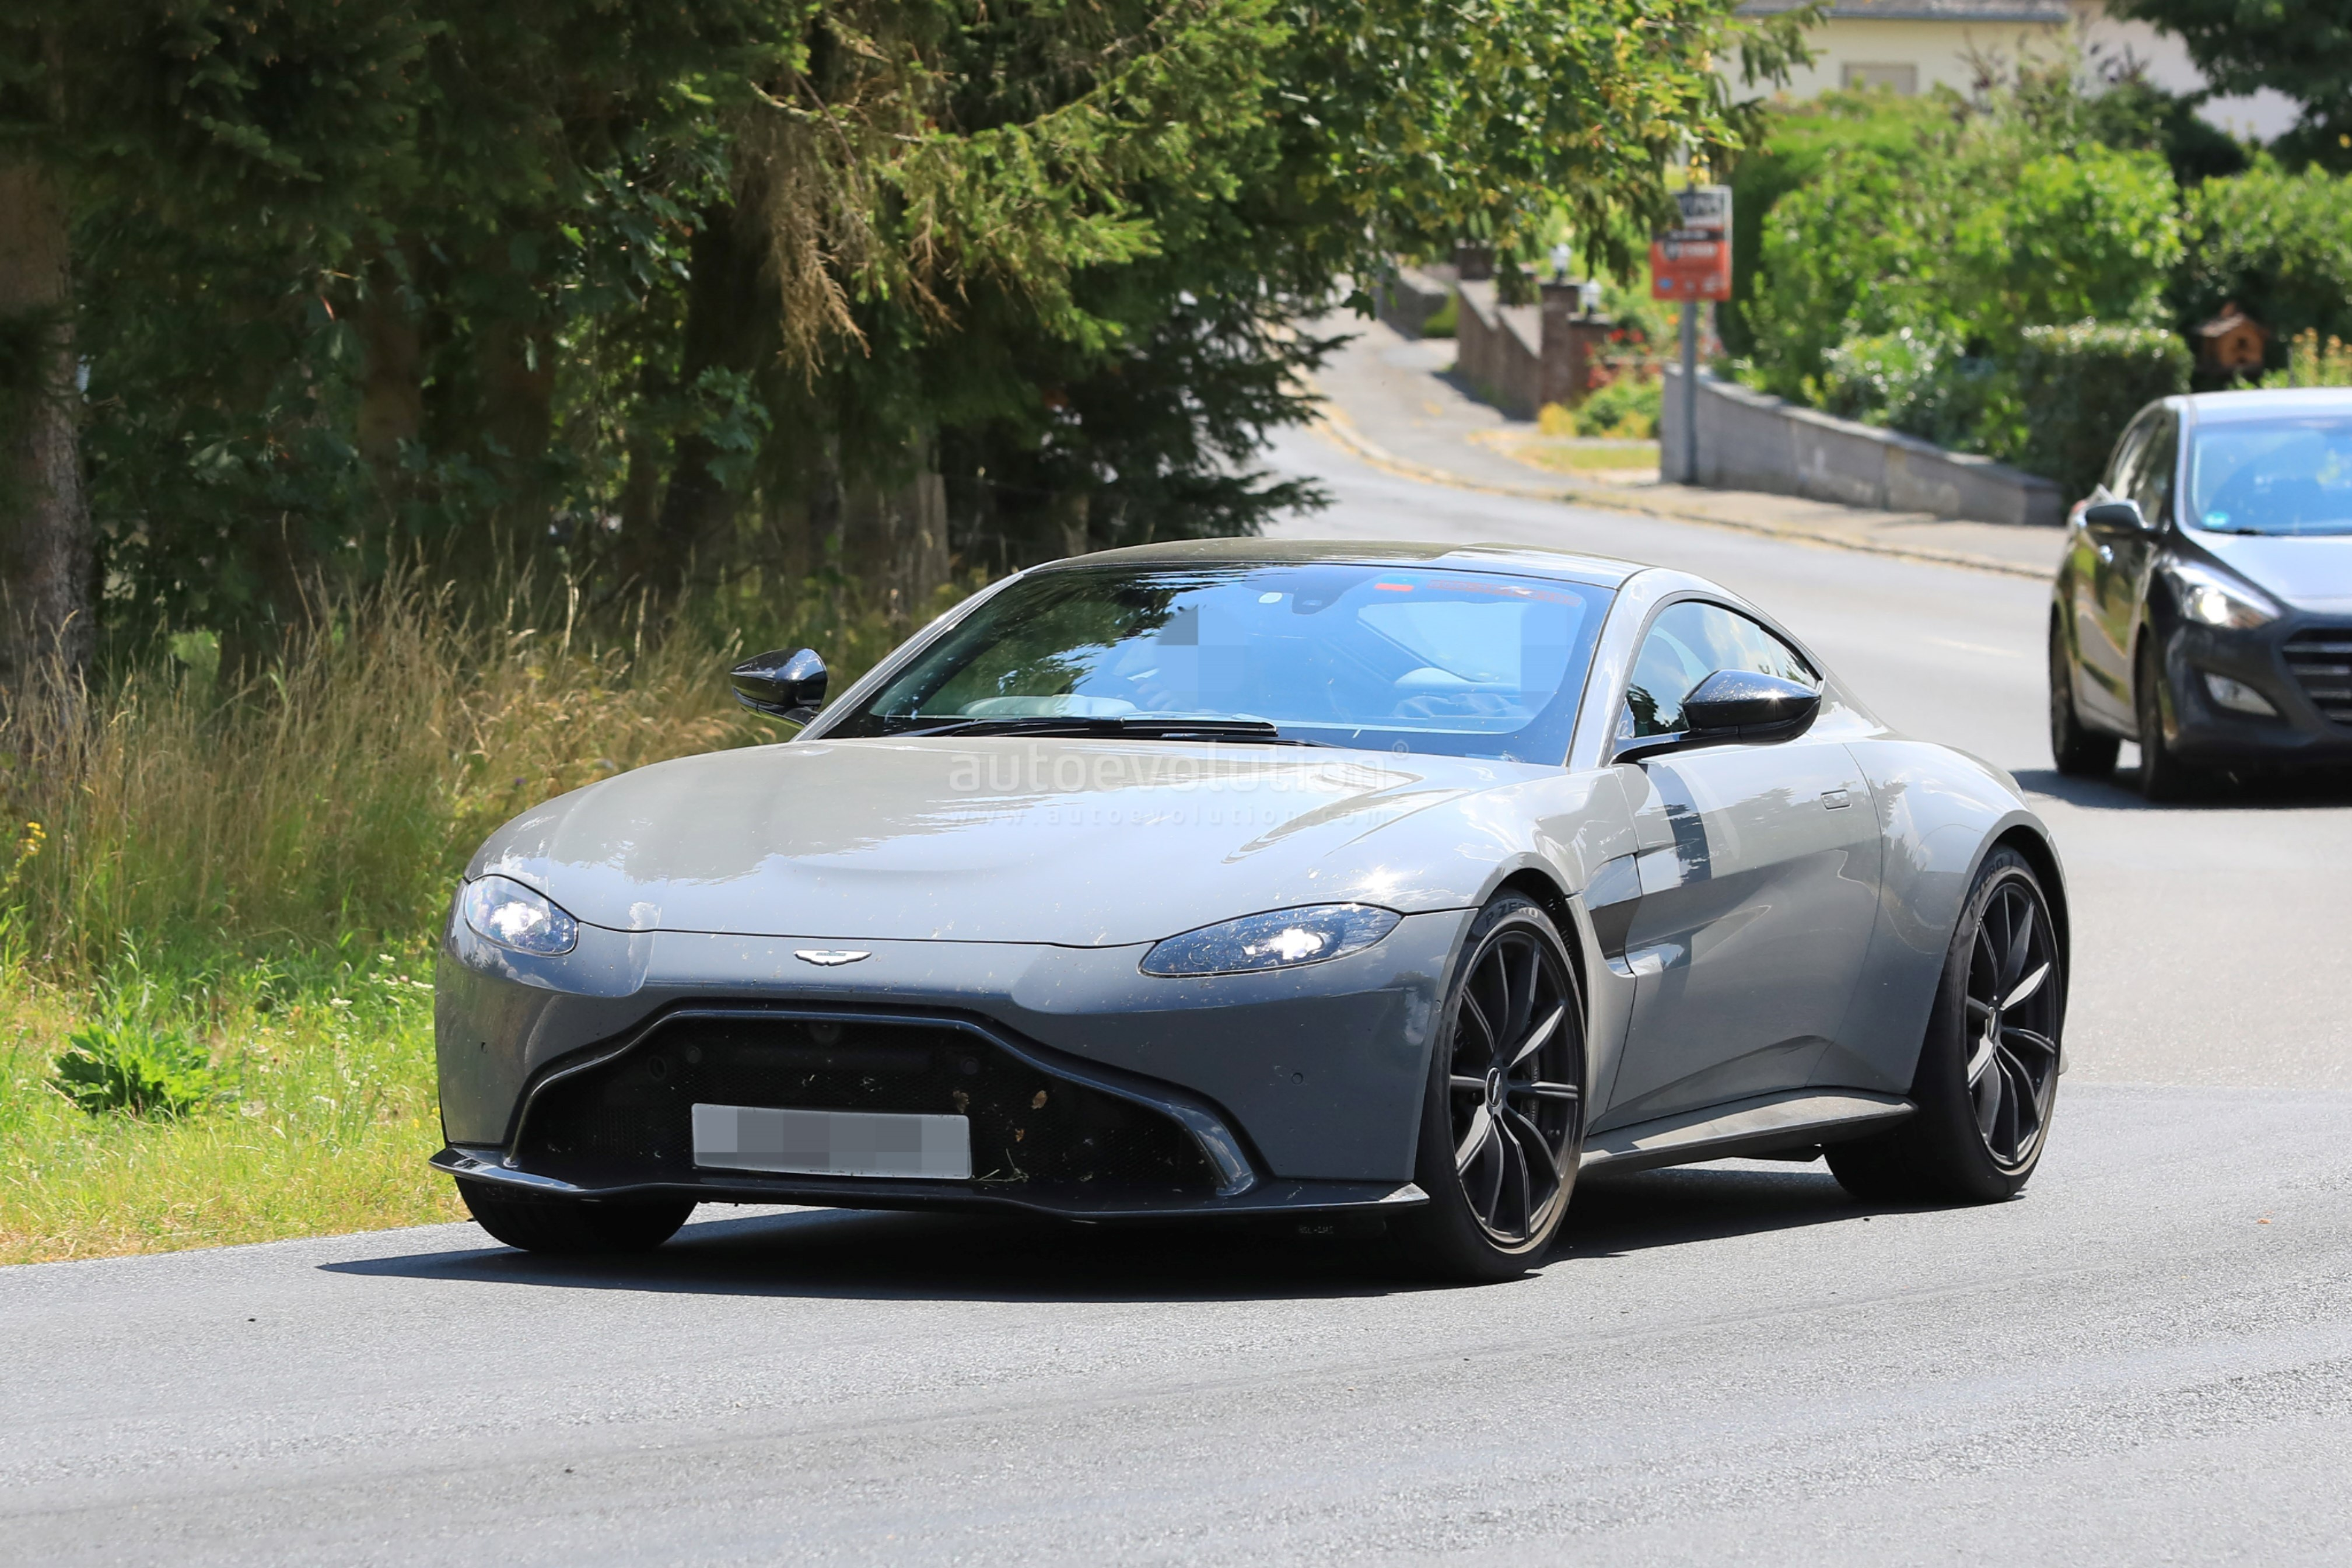 2020 Aston Martin V8 Vantage S Test Mule Spied Near the ...